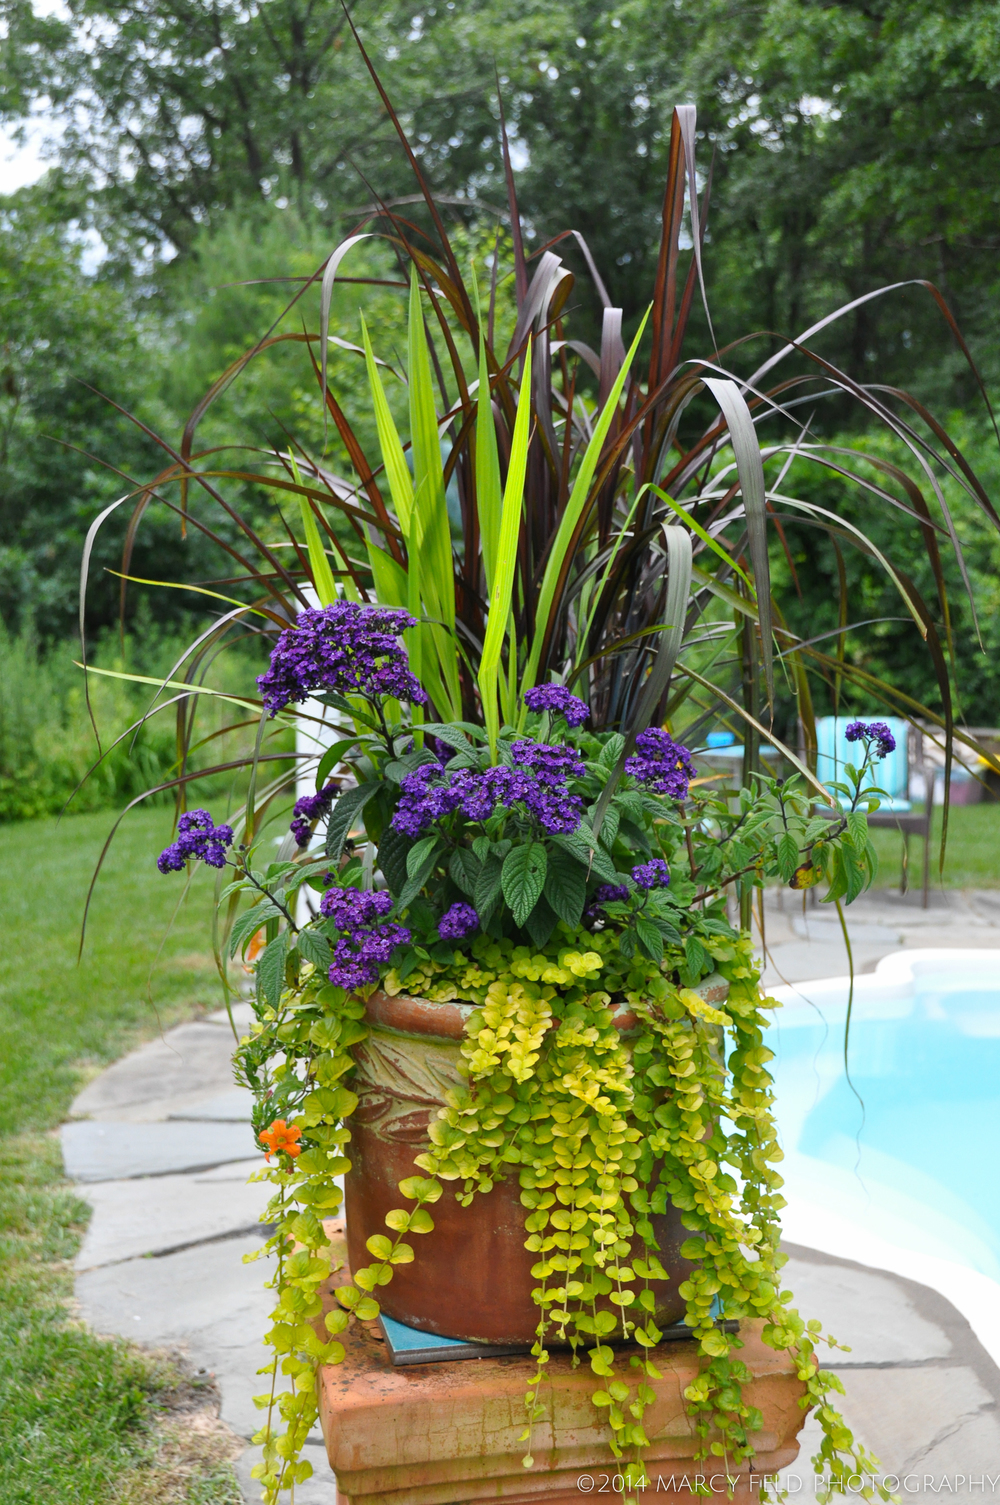 Another Heliotrope filled planter with a glimpse of the pool